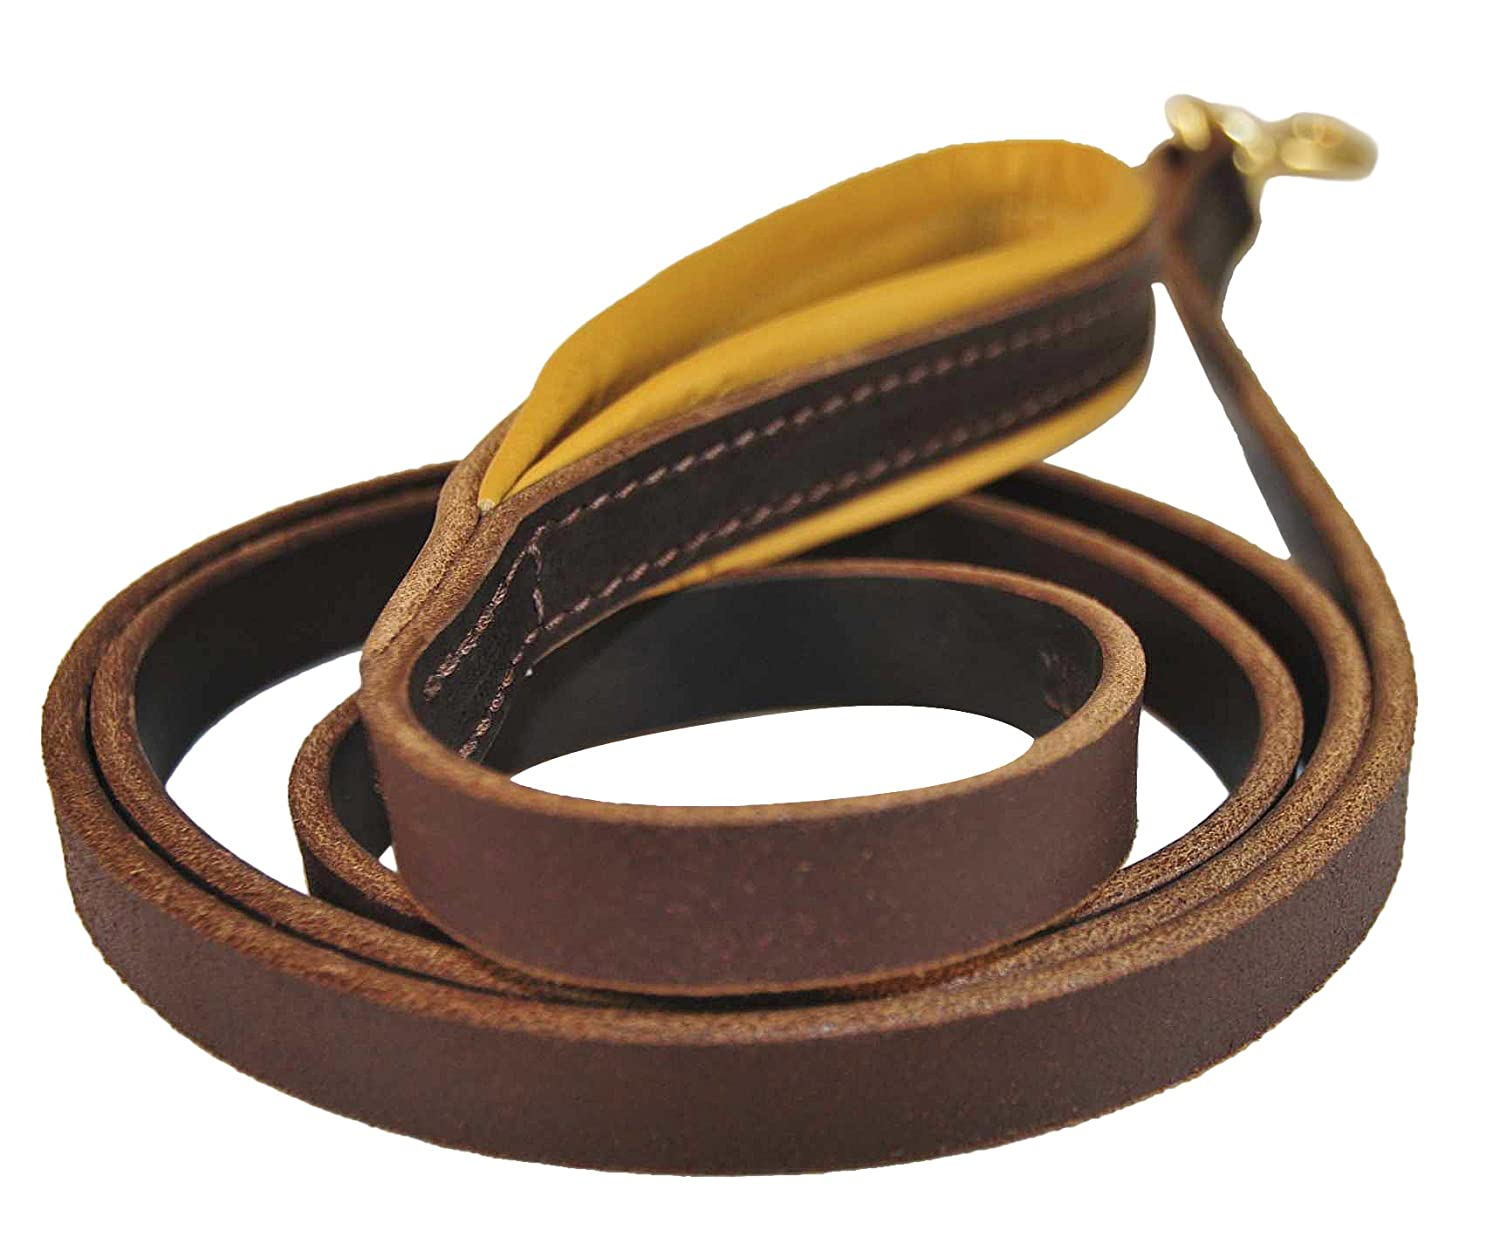 2-Feet by 3 4-Inch Dean & Tyler Soft Touch Leash with Solid Brass Hardware and Nappa Padded Handle, Brown, 2-Feet by 3 4-Inch